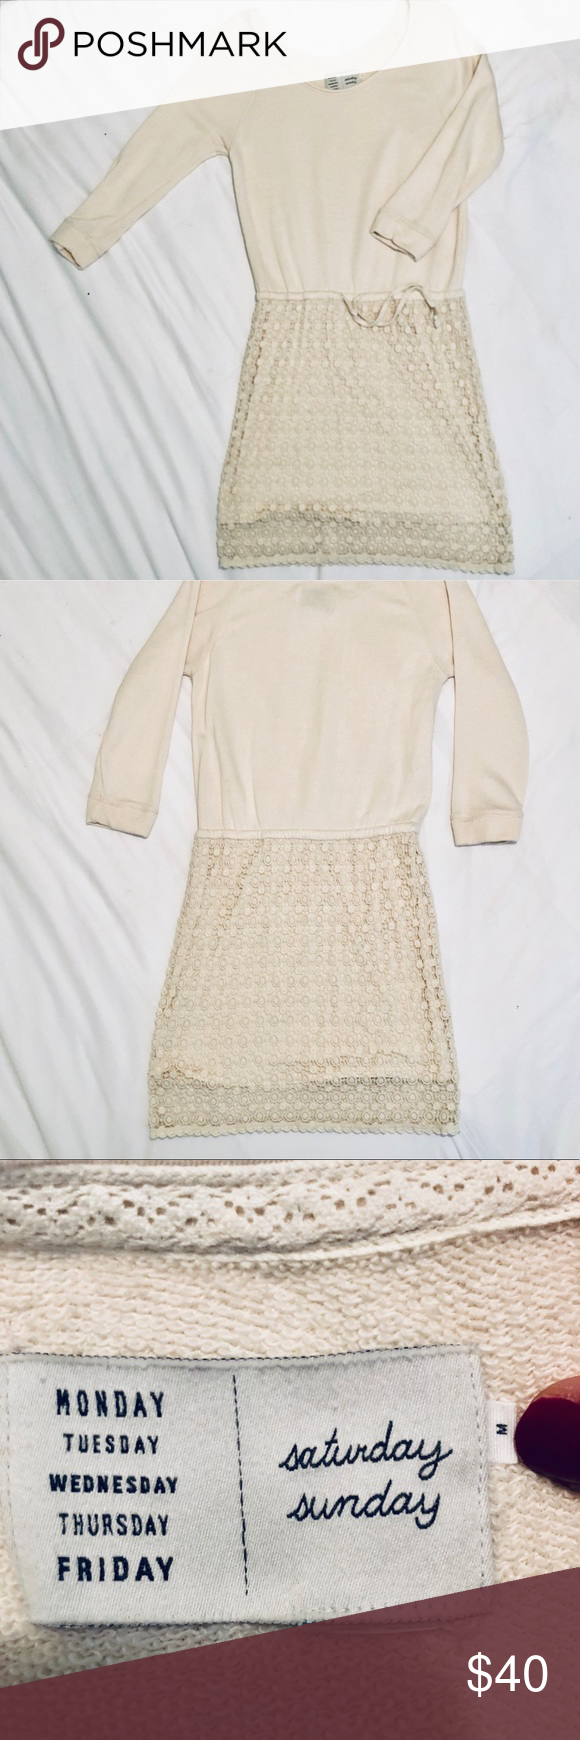 eaf78400574d Saturday Sunday Casual Dress Anthropologie Saturday Sunday Ceridwen Tunic  Dress. Cream knit long sleeve top. Lined lace overlay bottom. Tie waist. Size  M. ...